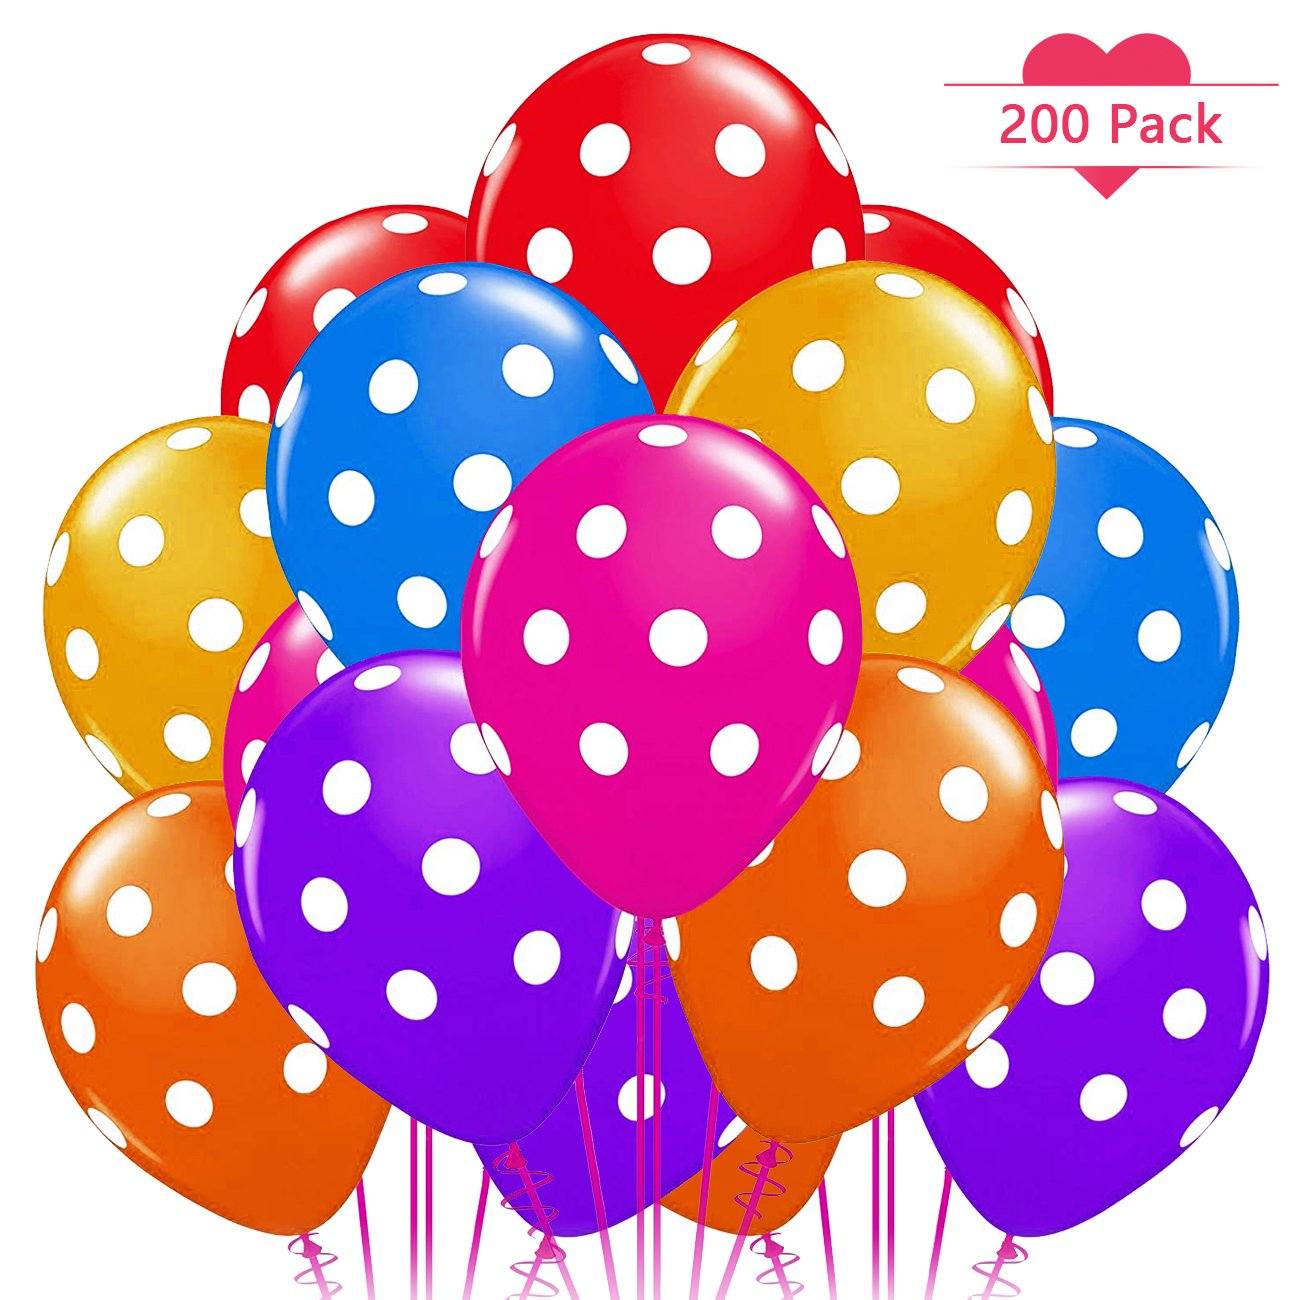 200 Pack Assorted Polka Dots Balloon 15'' (3g) Latex Helium Balloons for Wedding Birthday Party Festival Christmas Decorations Kids Toys